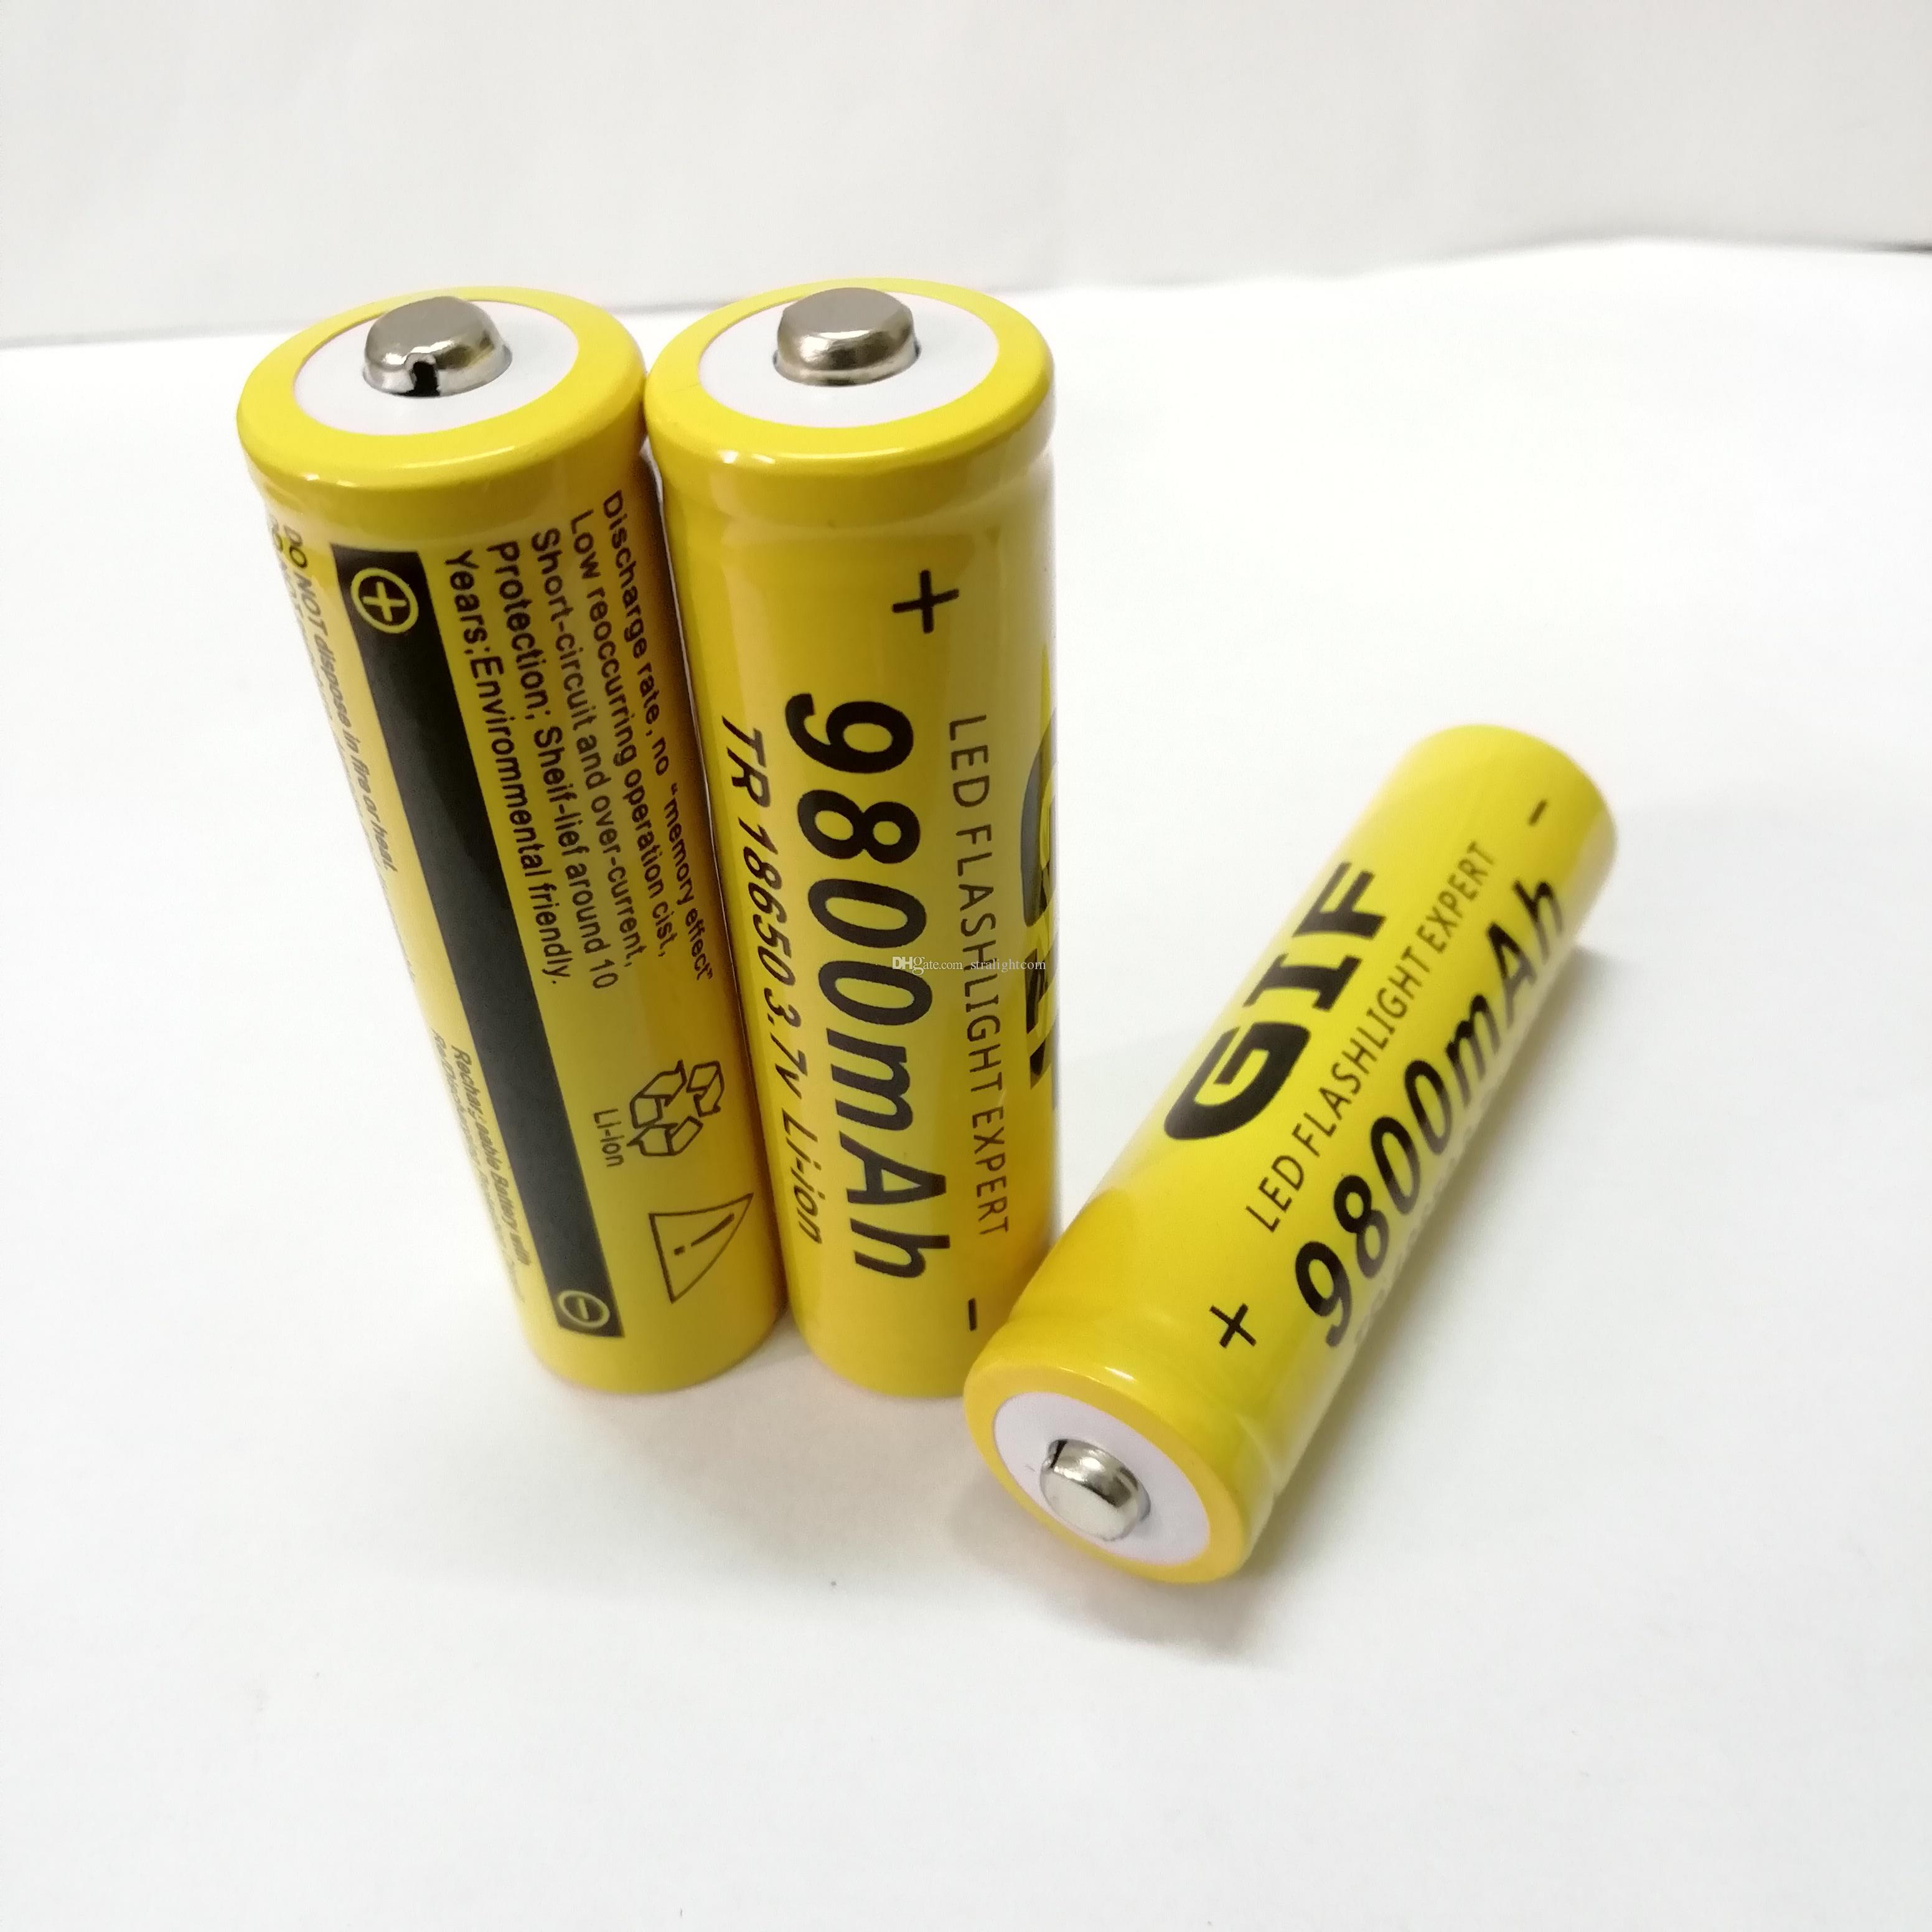 18650 GIF 9800mAh 3.7v pointed lithium battery can be used for electronic products such as bright flashlight. F